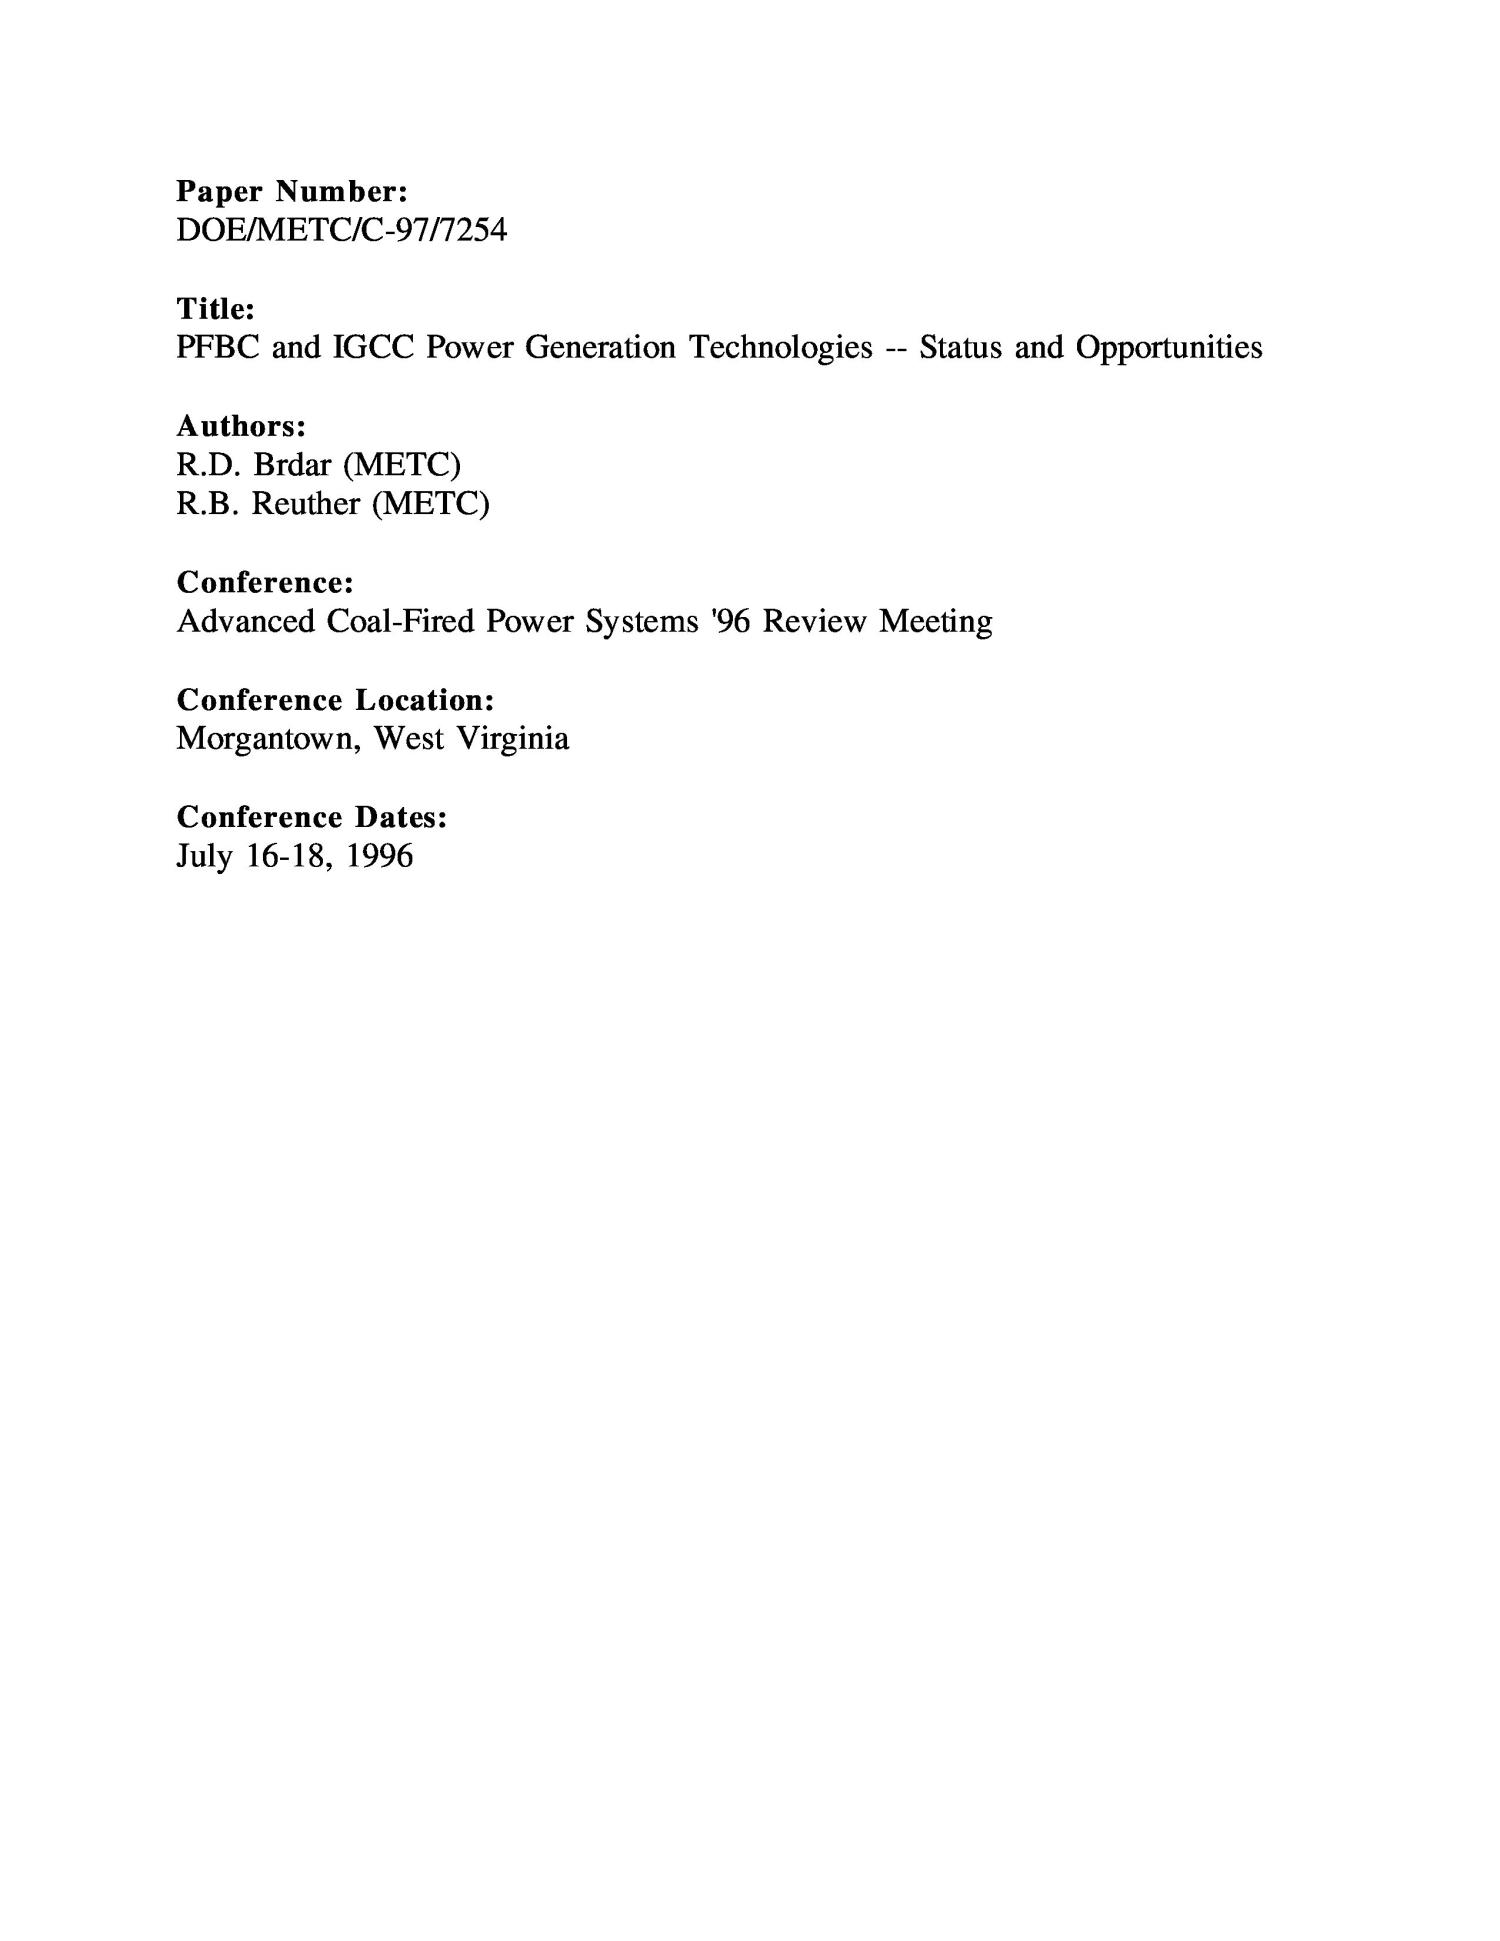 PFBC and IGCC power generation technologies: status and opportunities                                                                                                      [Sequence #]: 1 of 49